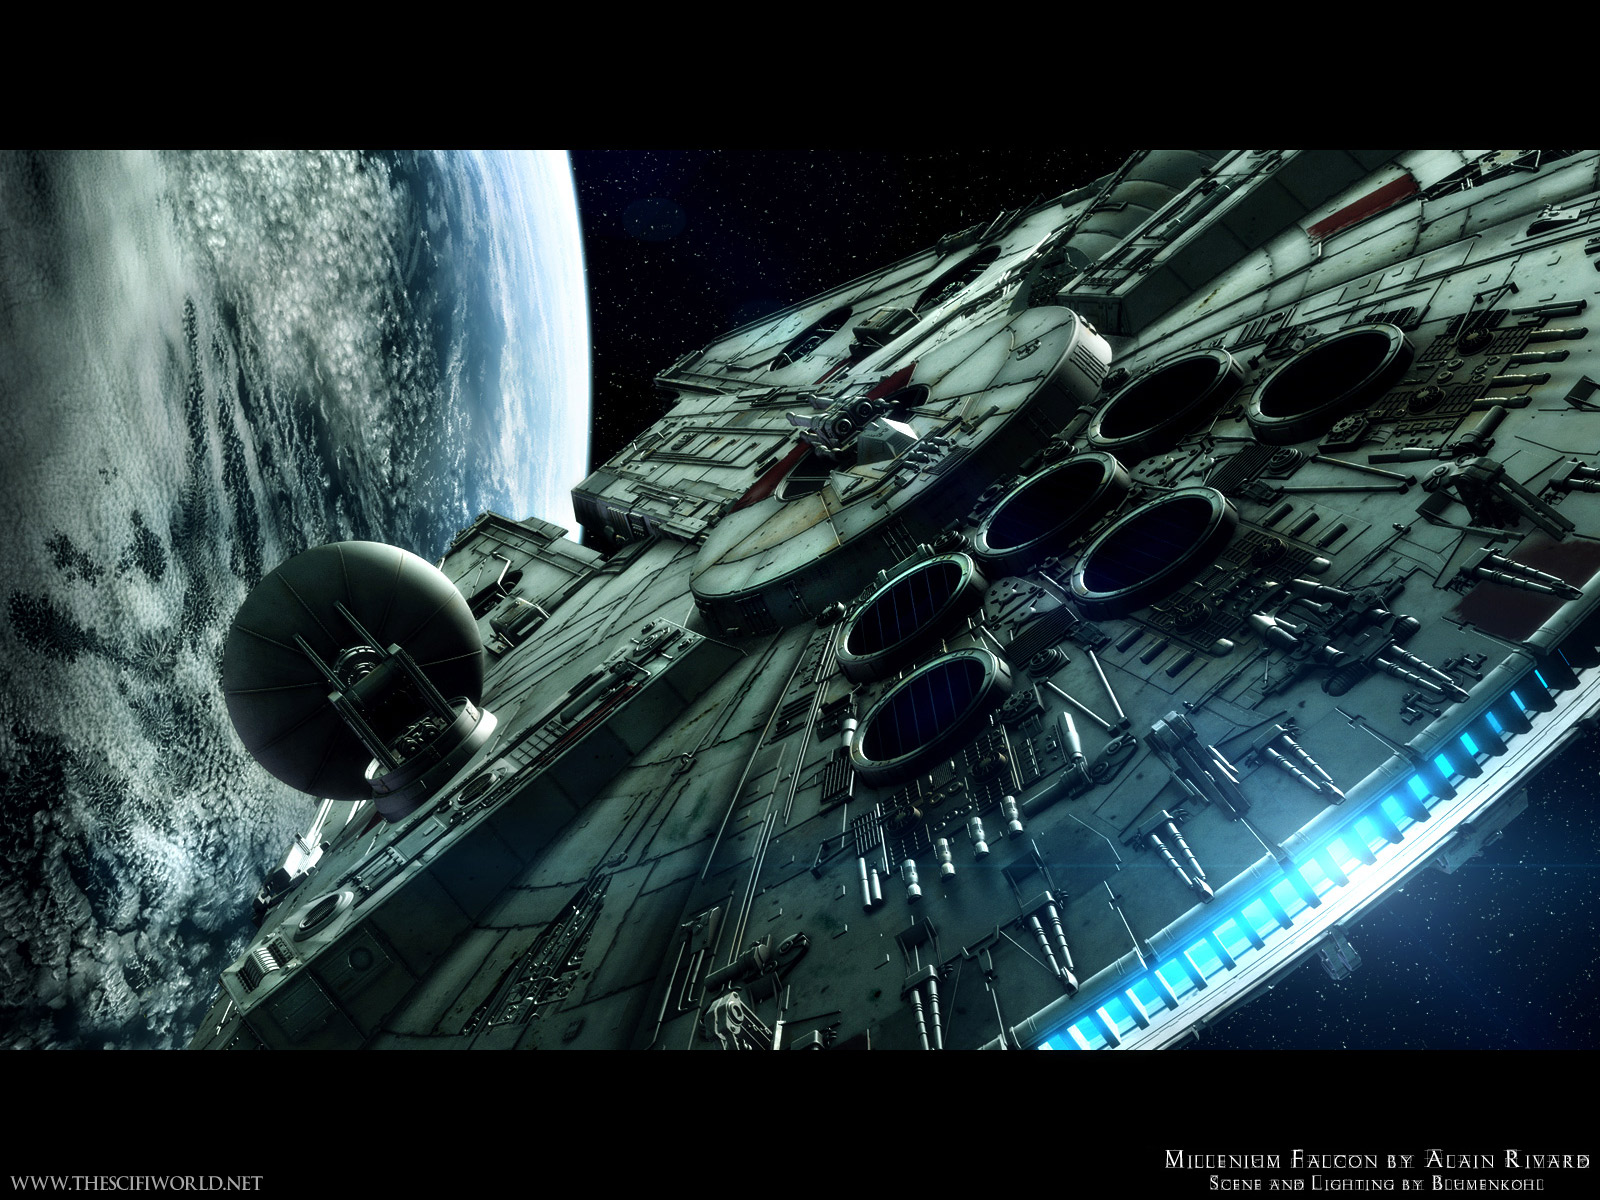 star wars millenium falcon by alain rivard android wallpaper star wars millenium falcon by alain rivard android wallpaper